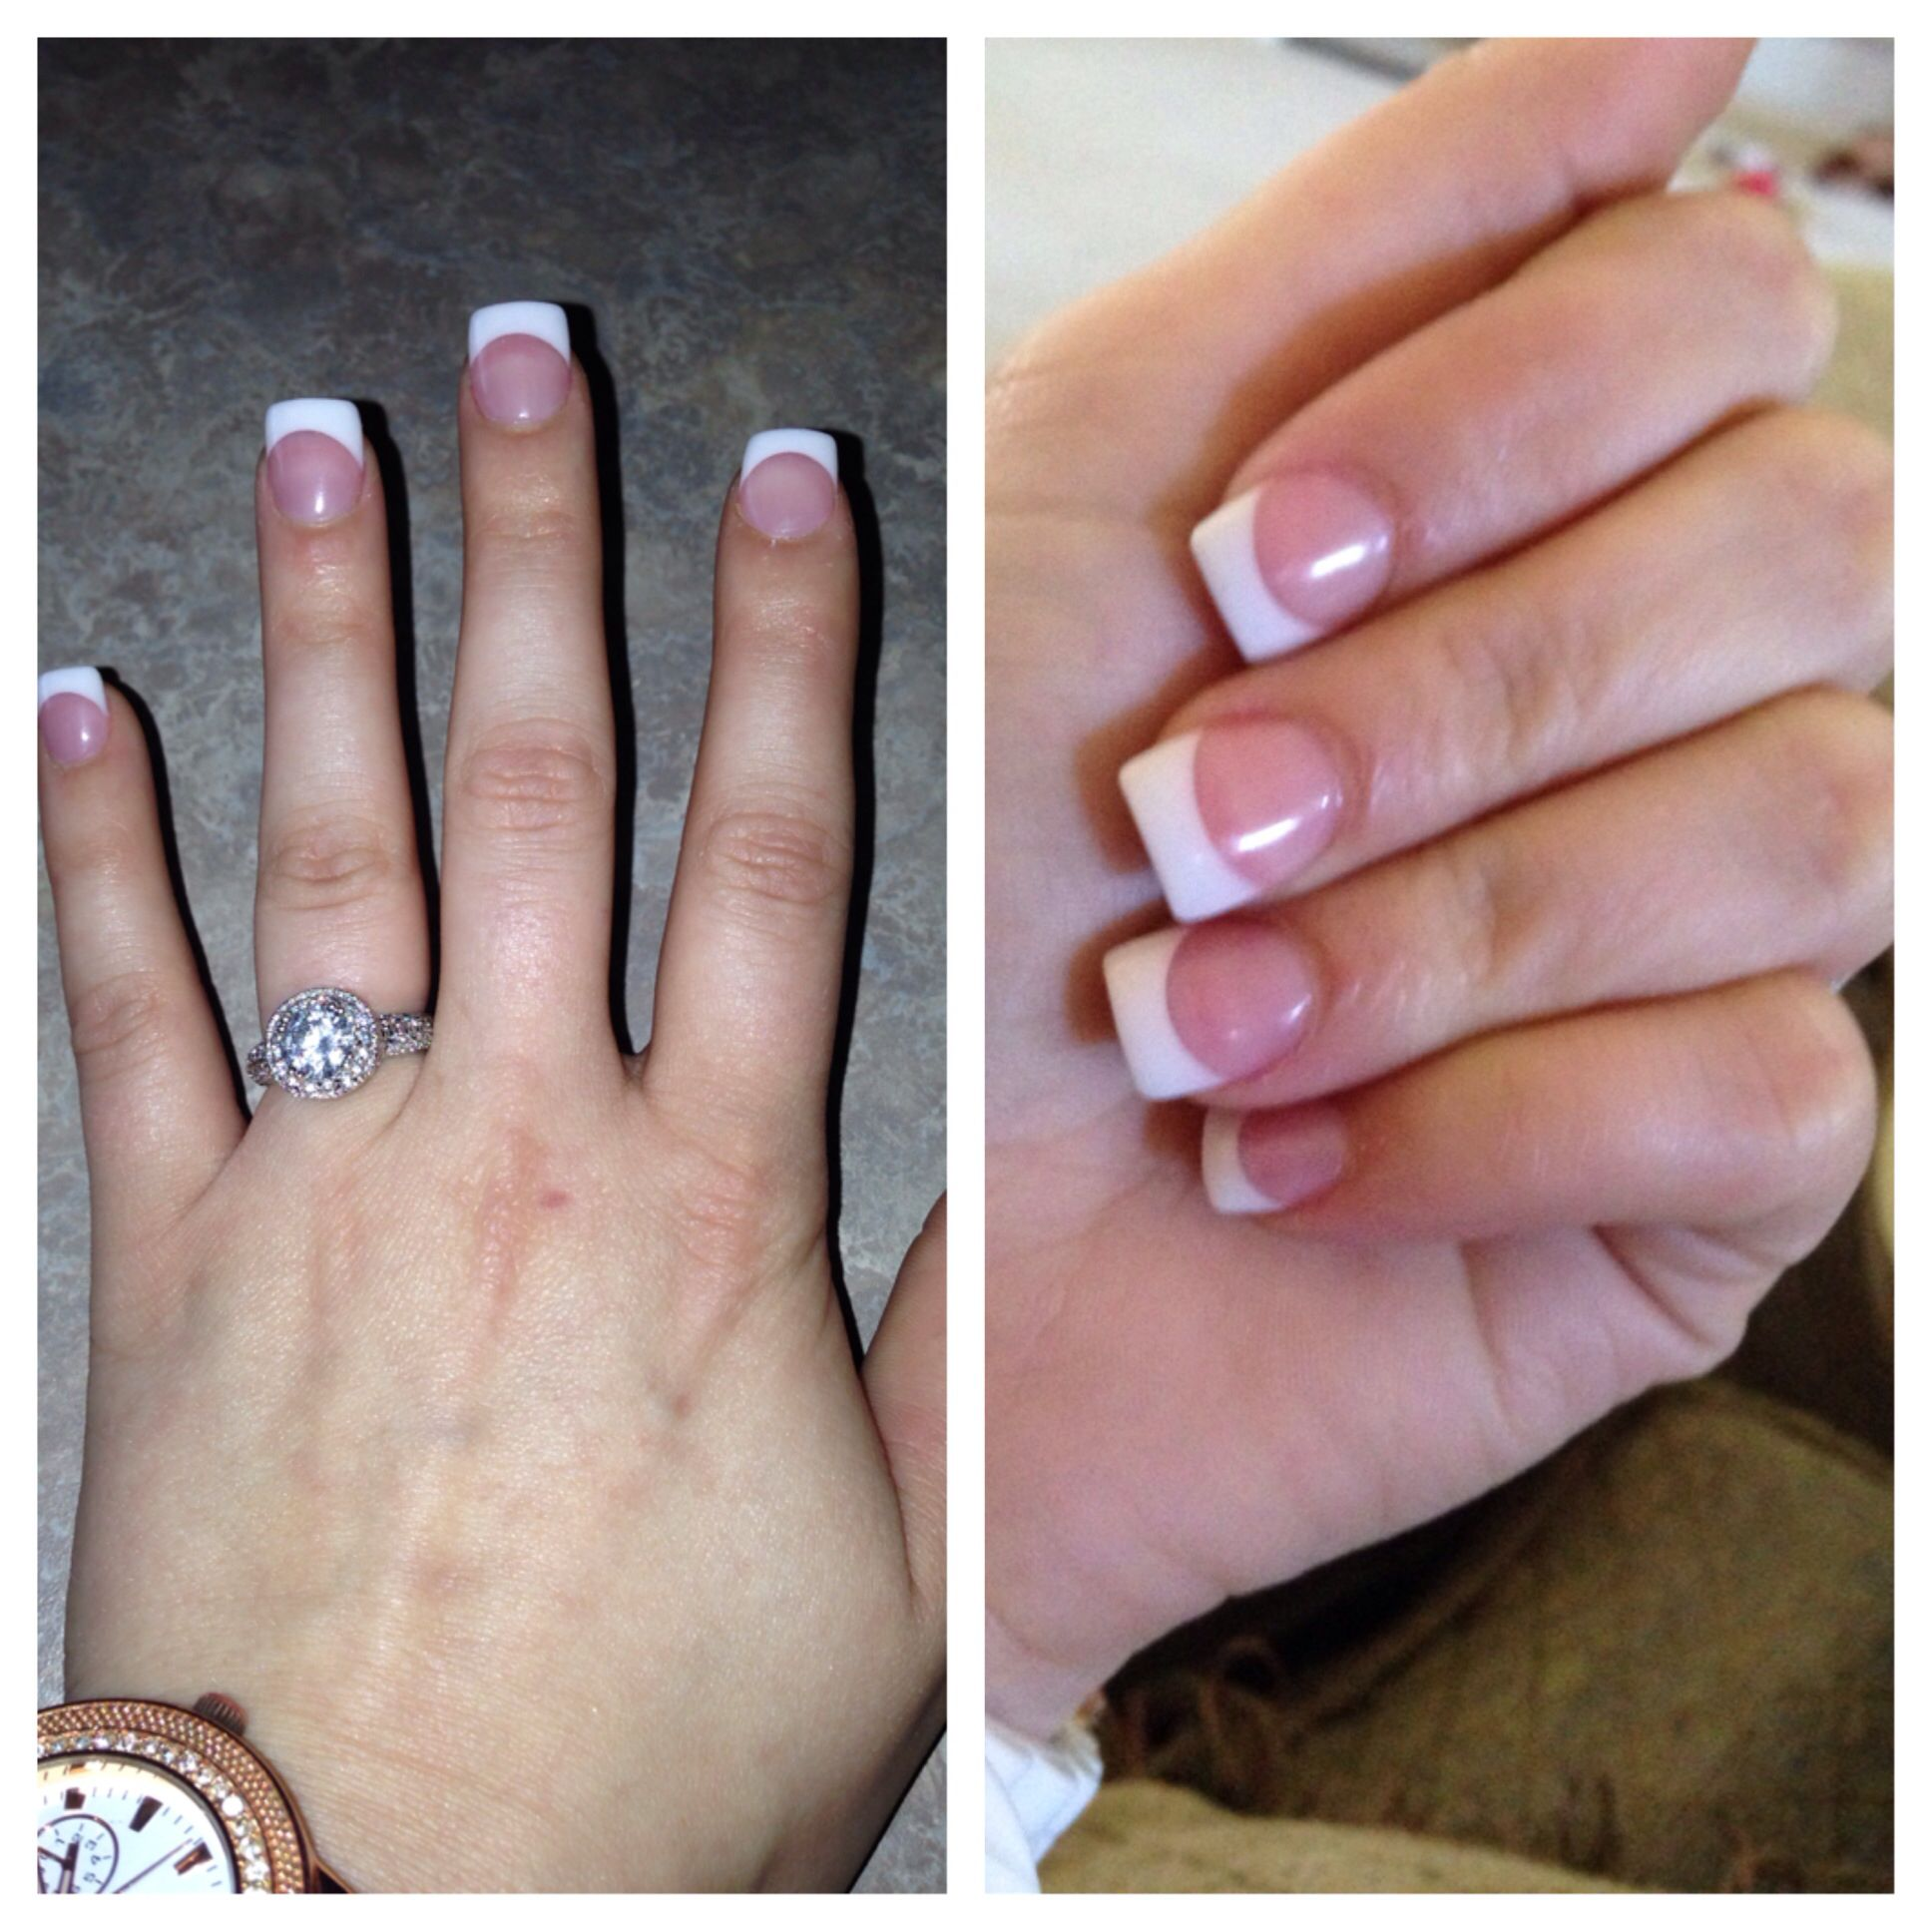 Pin By Amy Lowrie On Nails French Tip Acrylic Nails French Nails Short Acrylic Nails